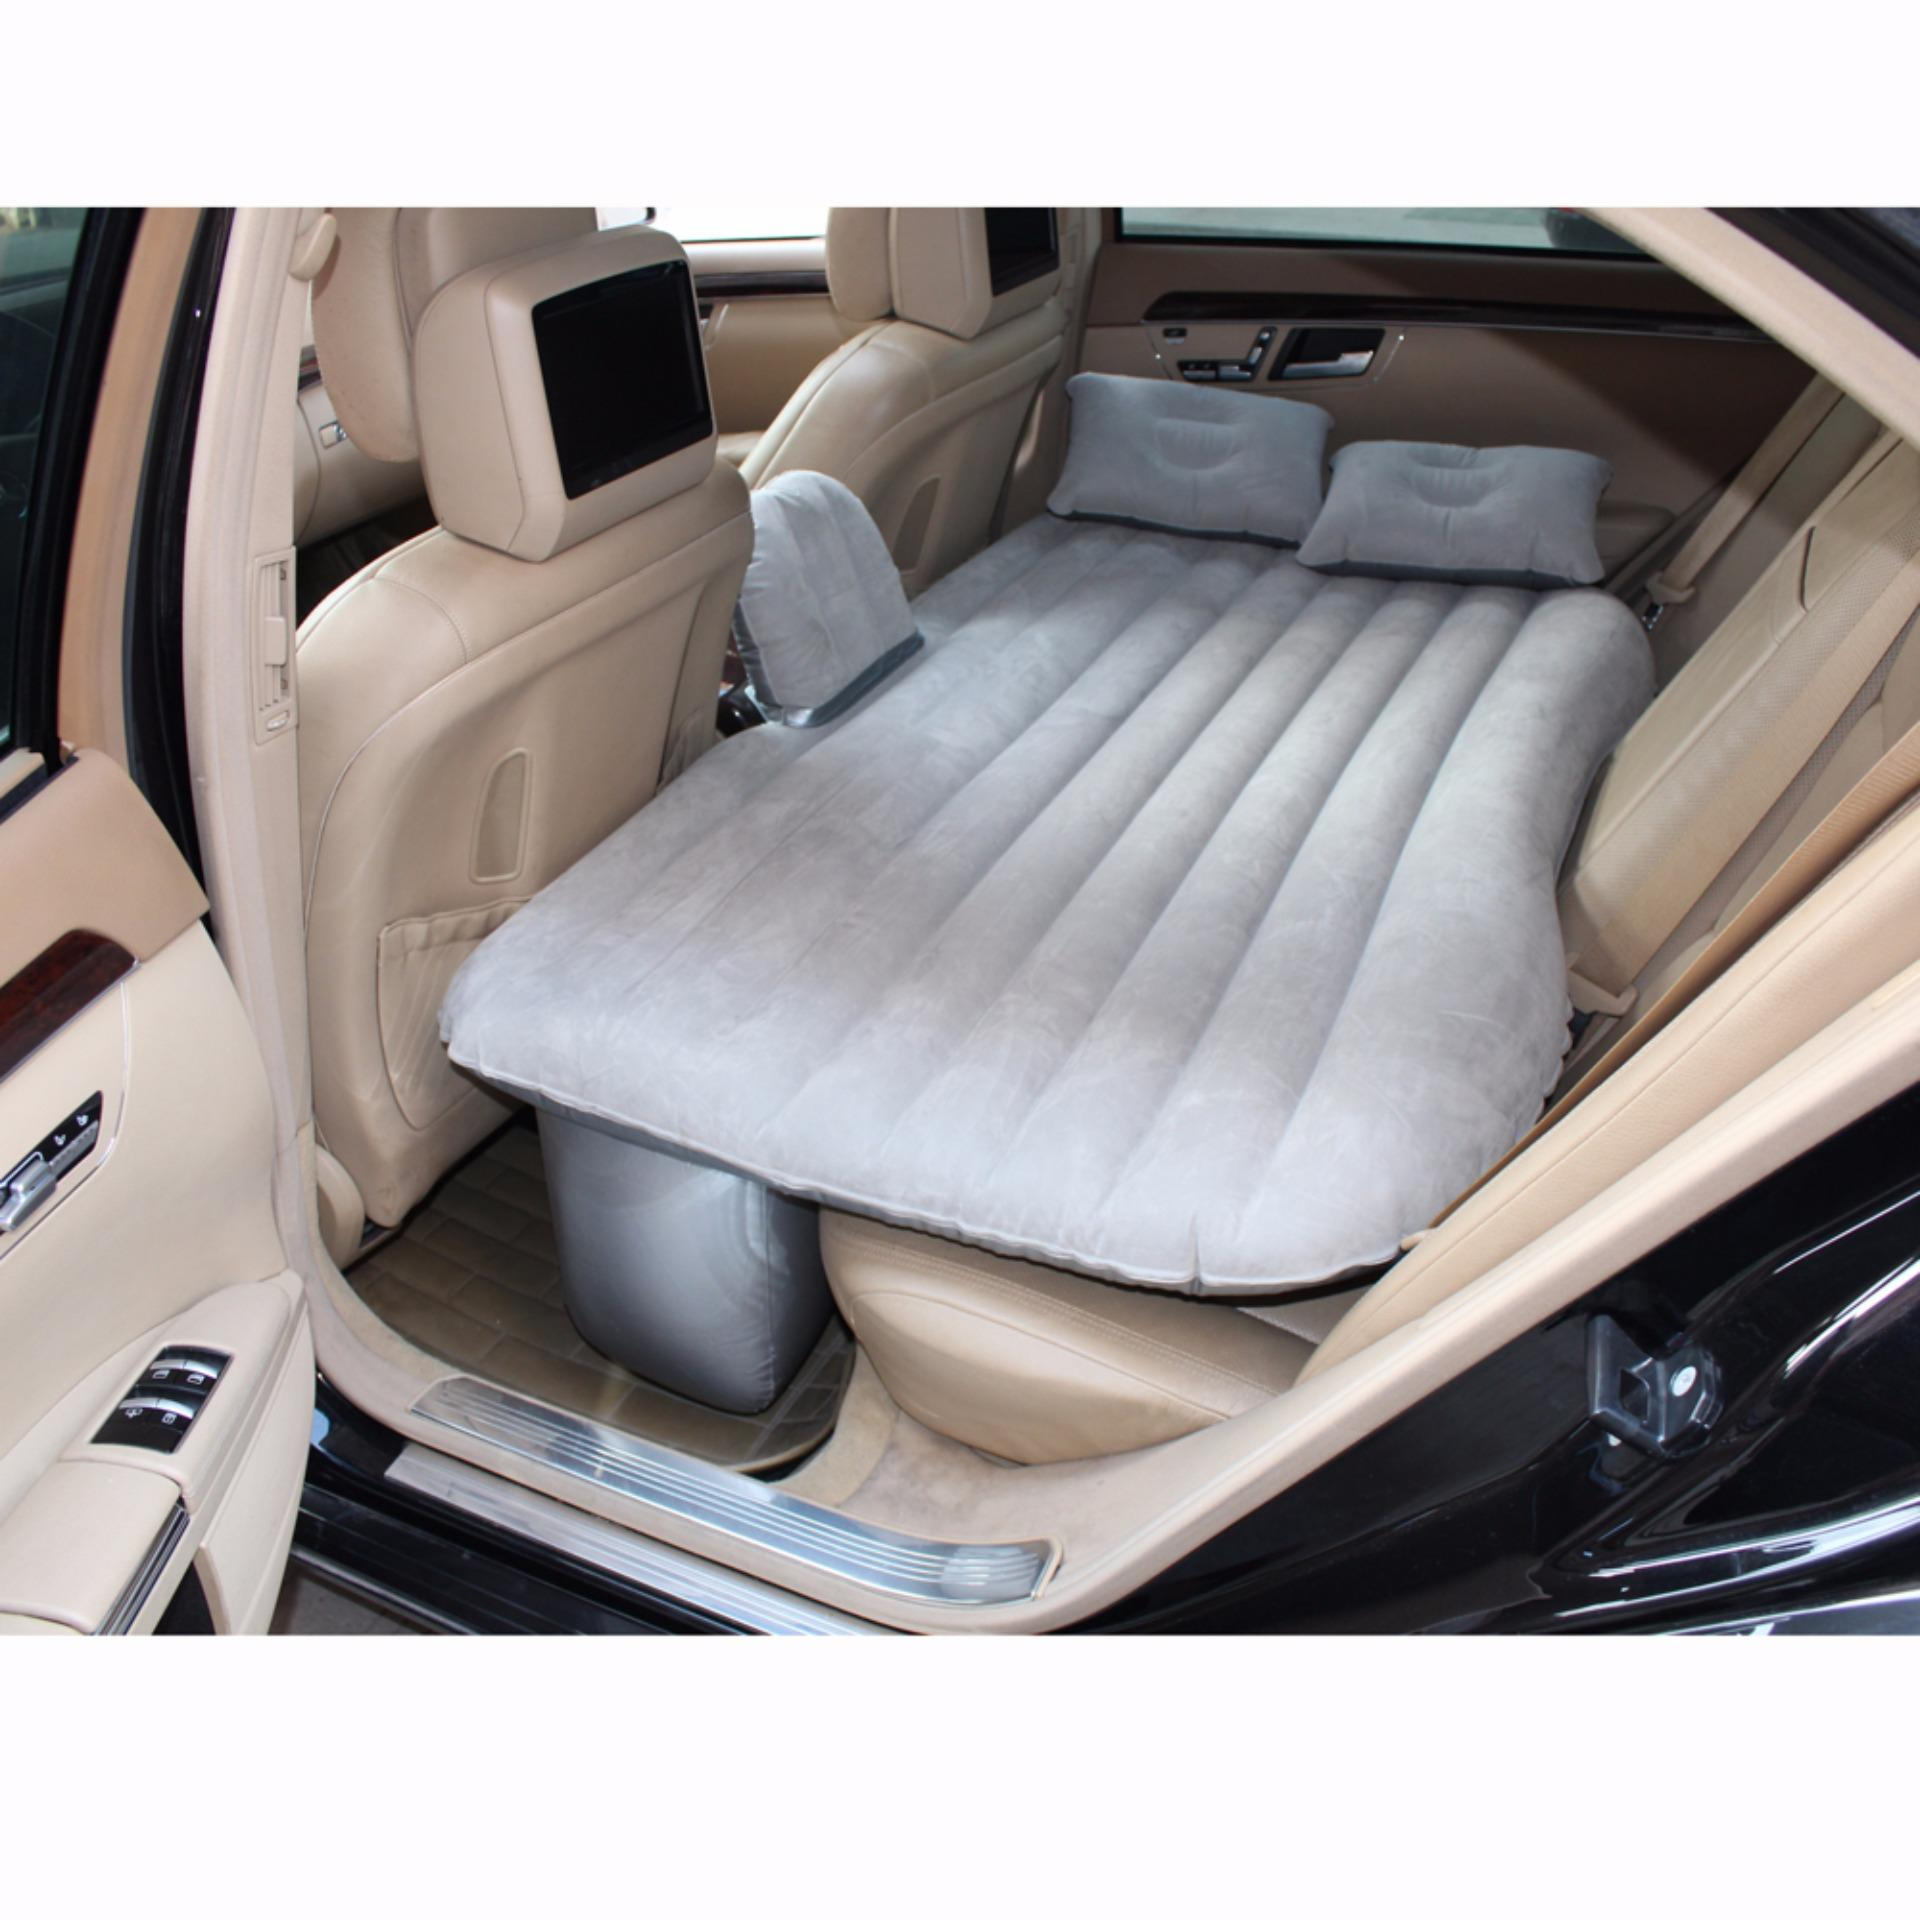 Universal  Car Air Mattress Bed Auto Back Seat Cover Drive Travel Car Inflatable Bed Wave Design Wi